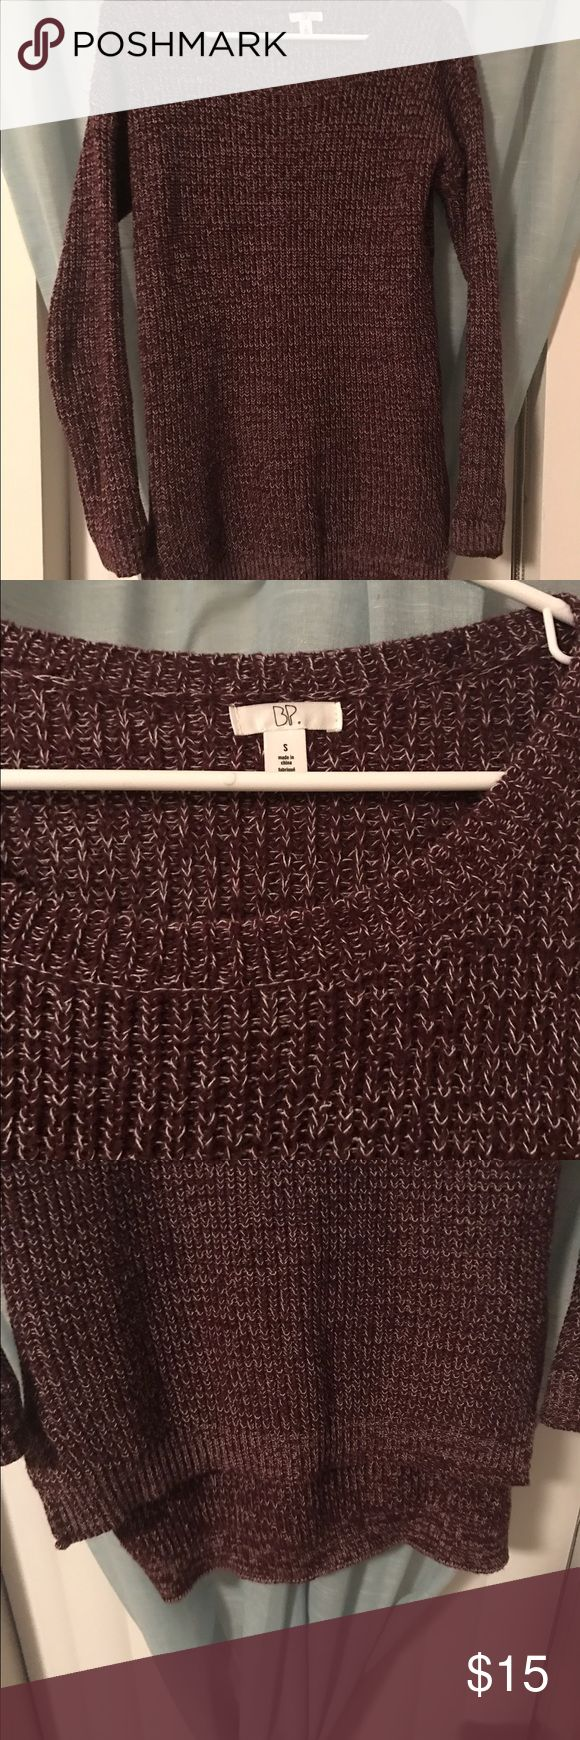 BP Burgundy Marled Sweater BP burgundy marled sweater, longer in the back. Very warm and great with leggings! Only worn once! bp Sweaters Crew & Scoop Necks